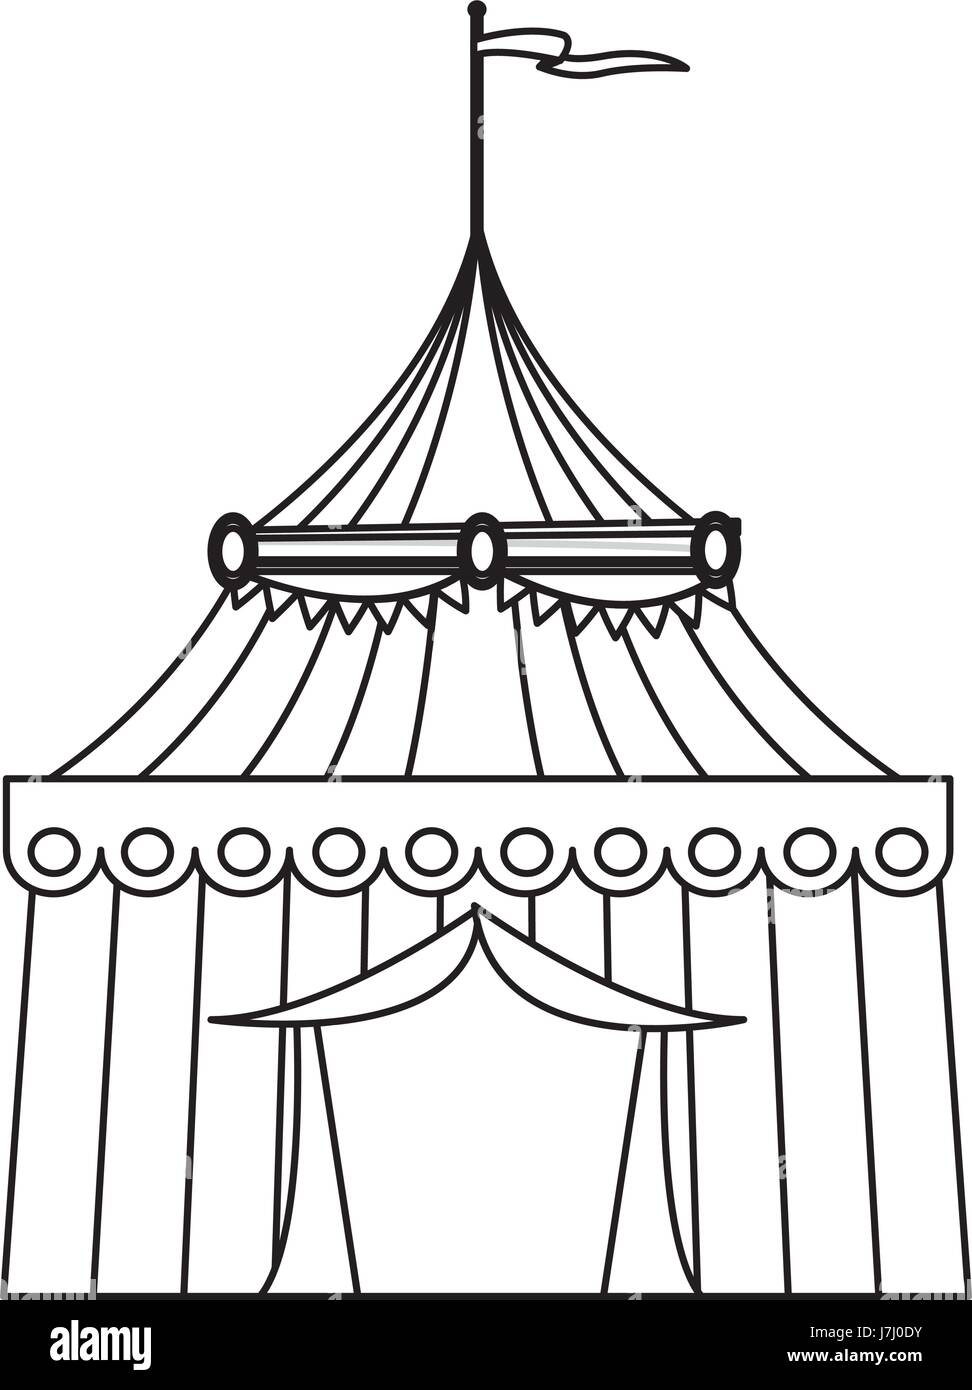 circus tent tops. outline stripes flag on top  sc 1 st  Alamy & circus tent tops. outline stripes flag on top Stock Vector Art ...